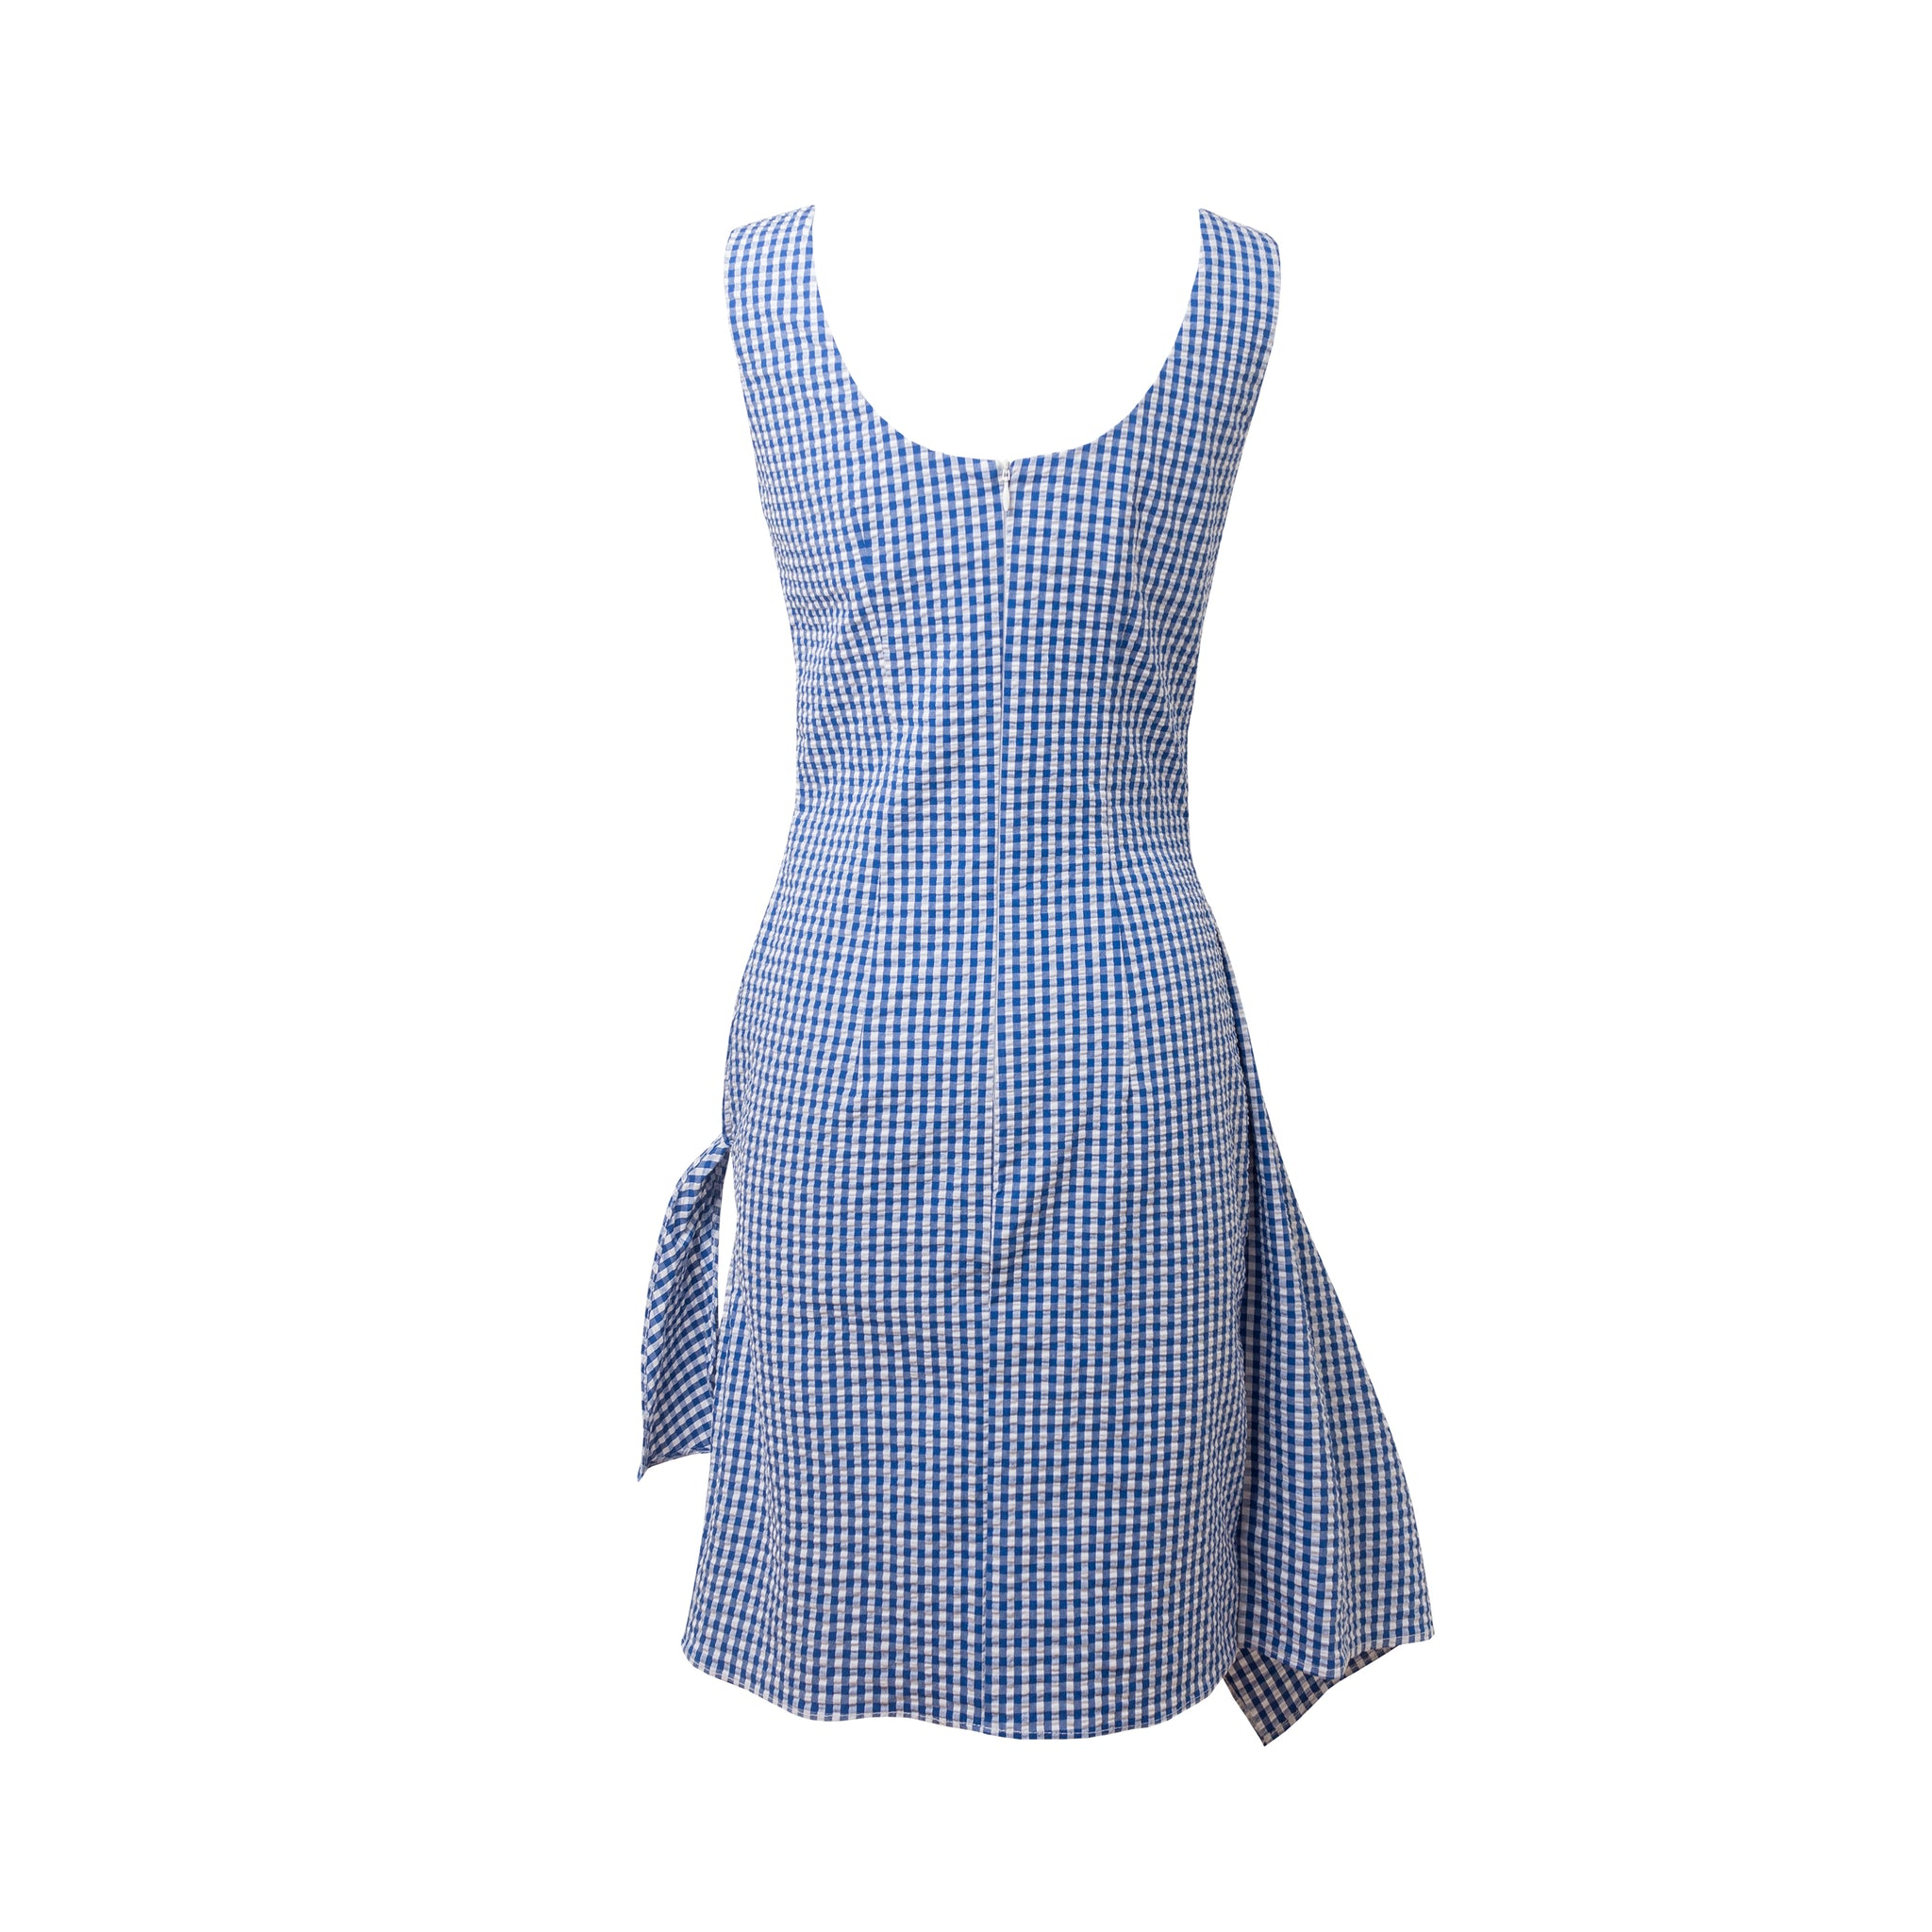 VECSES Blue & White Overlap Skirt Dress